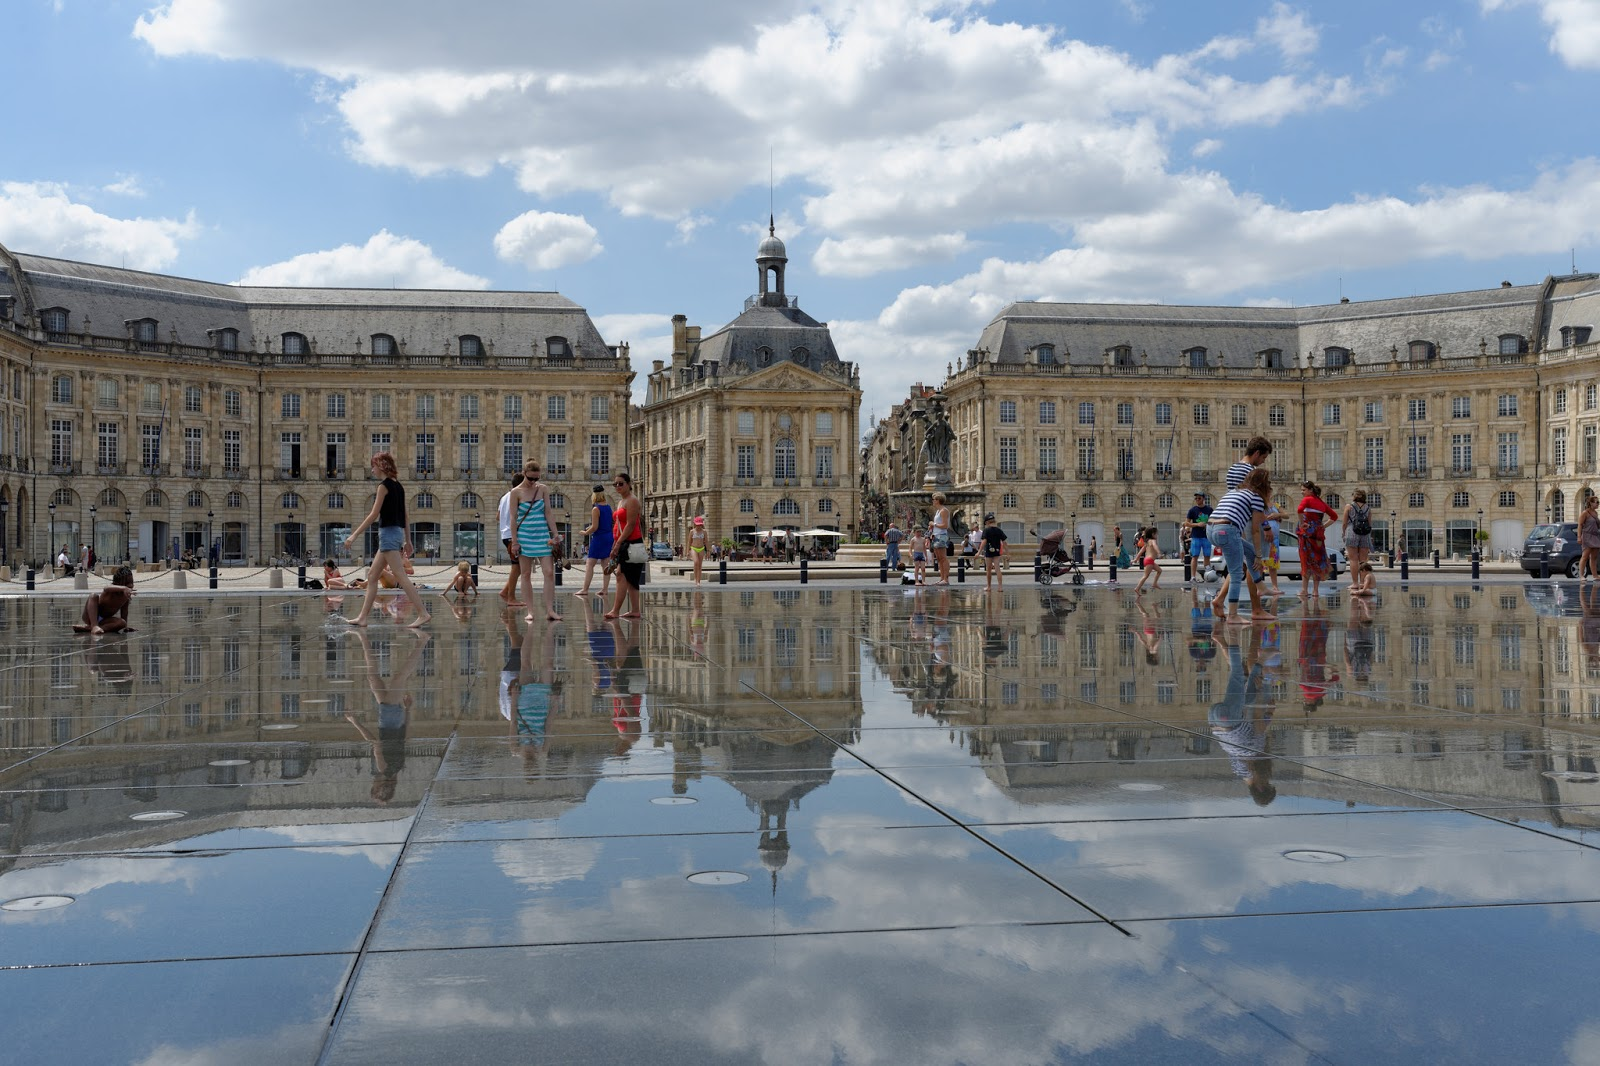 bordeaux miroir d'eau people water mirror